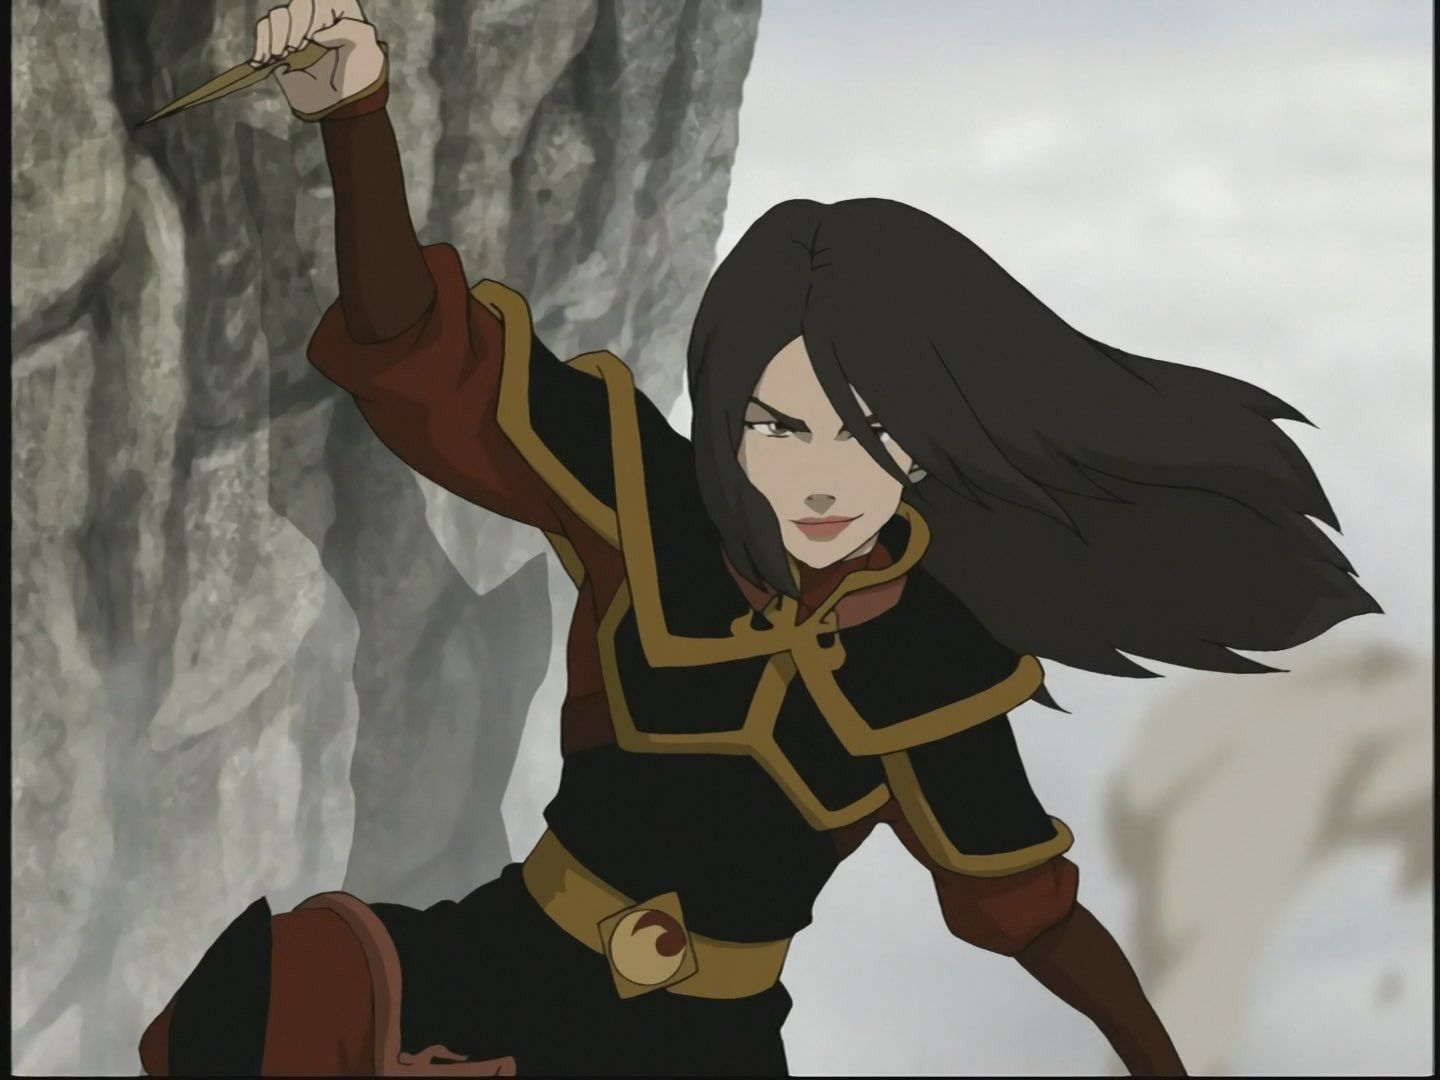 Asula Avatar The Last Airbender In 2020 Avatar Azula Avatar Legend Of Aang Avatar The Last Airbender